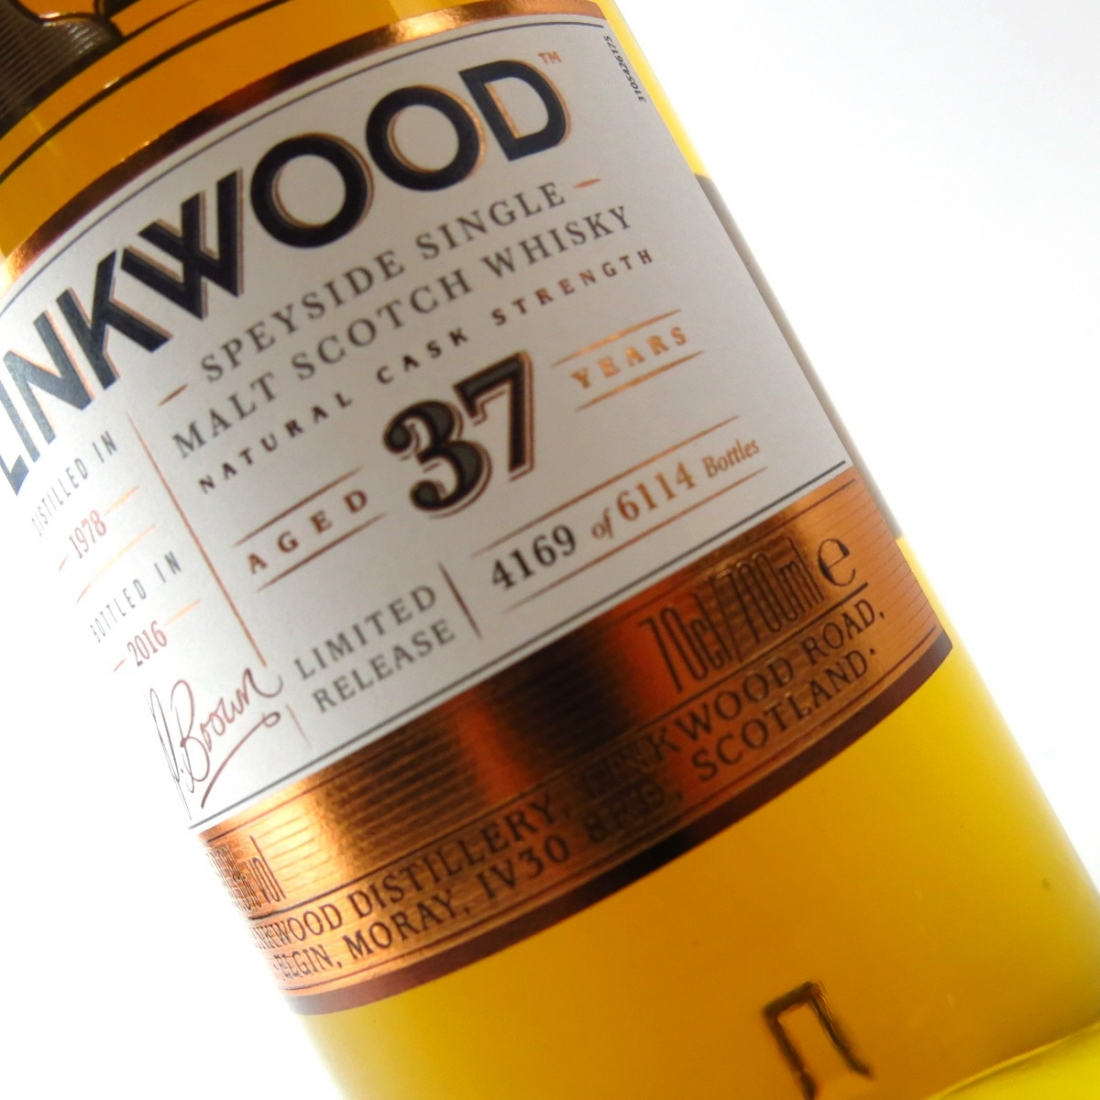 Linkwood 1978 Cask Strength 37 Year Old